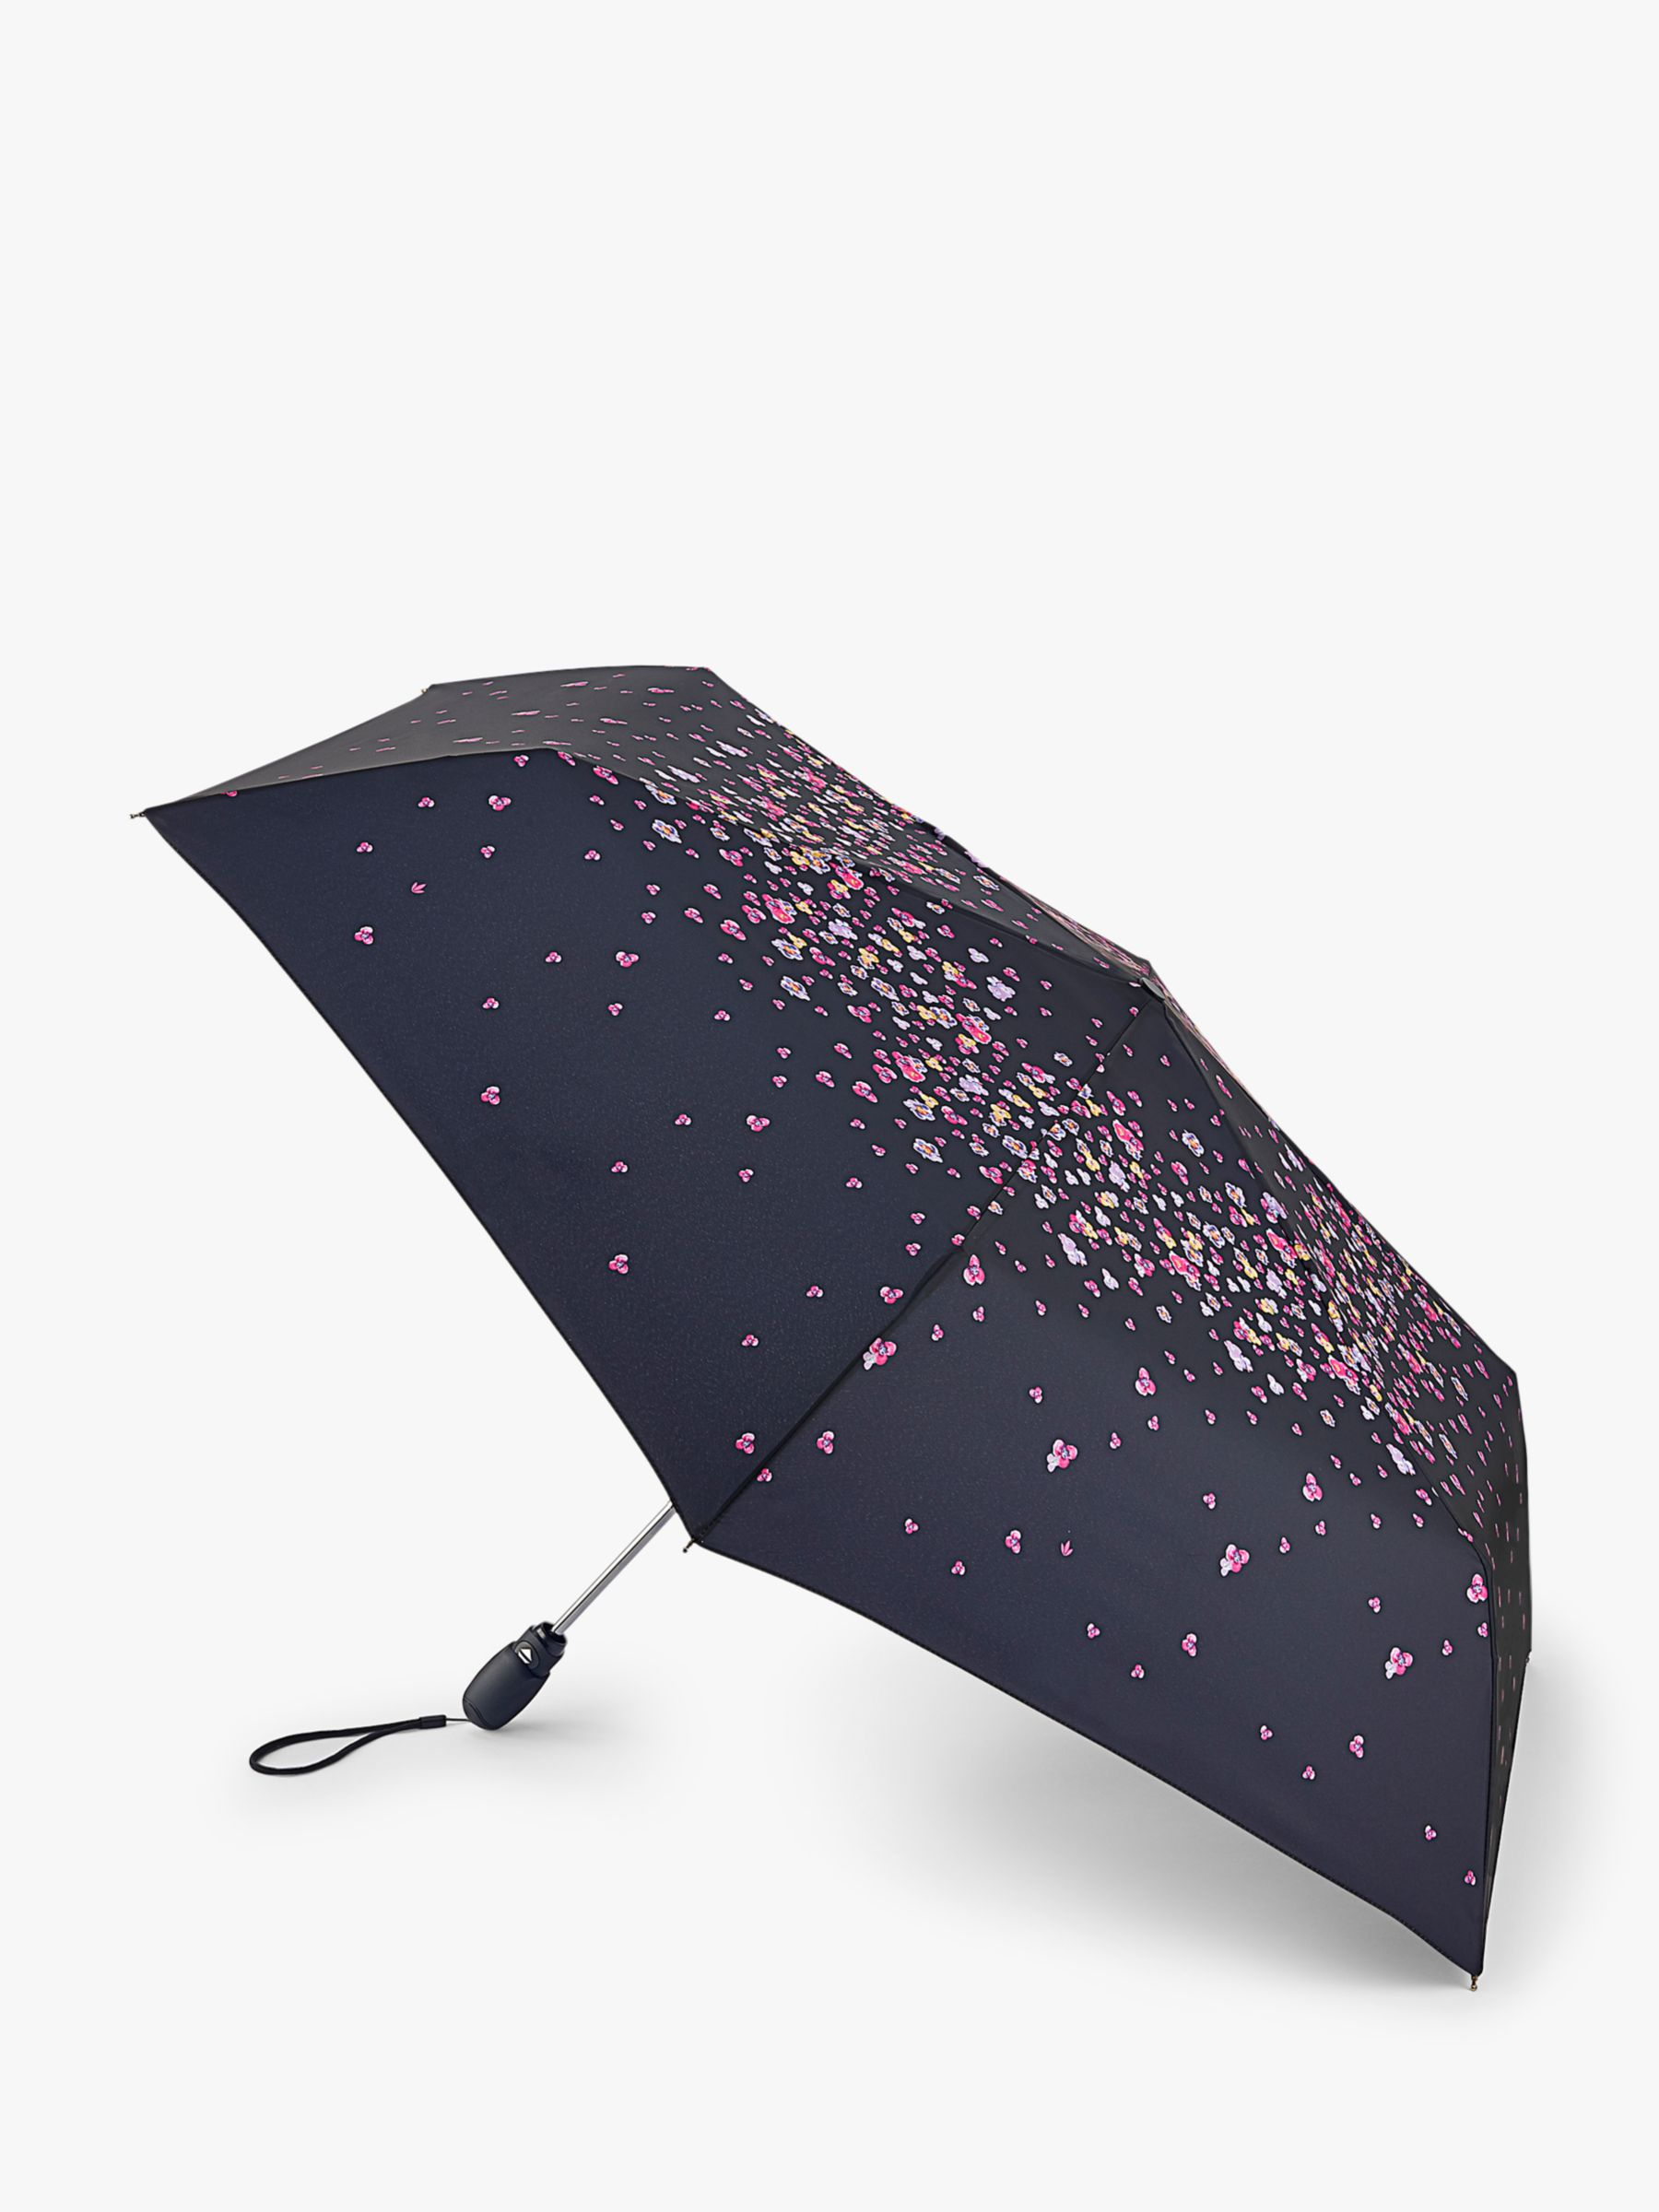 Fulton Fulton Pansy Print Slim Umbrella, Black/Multi